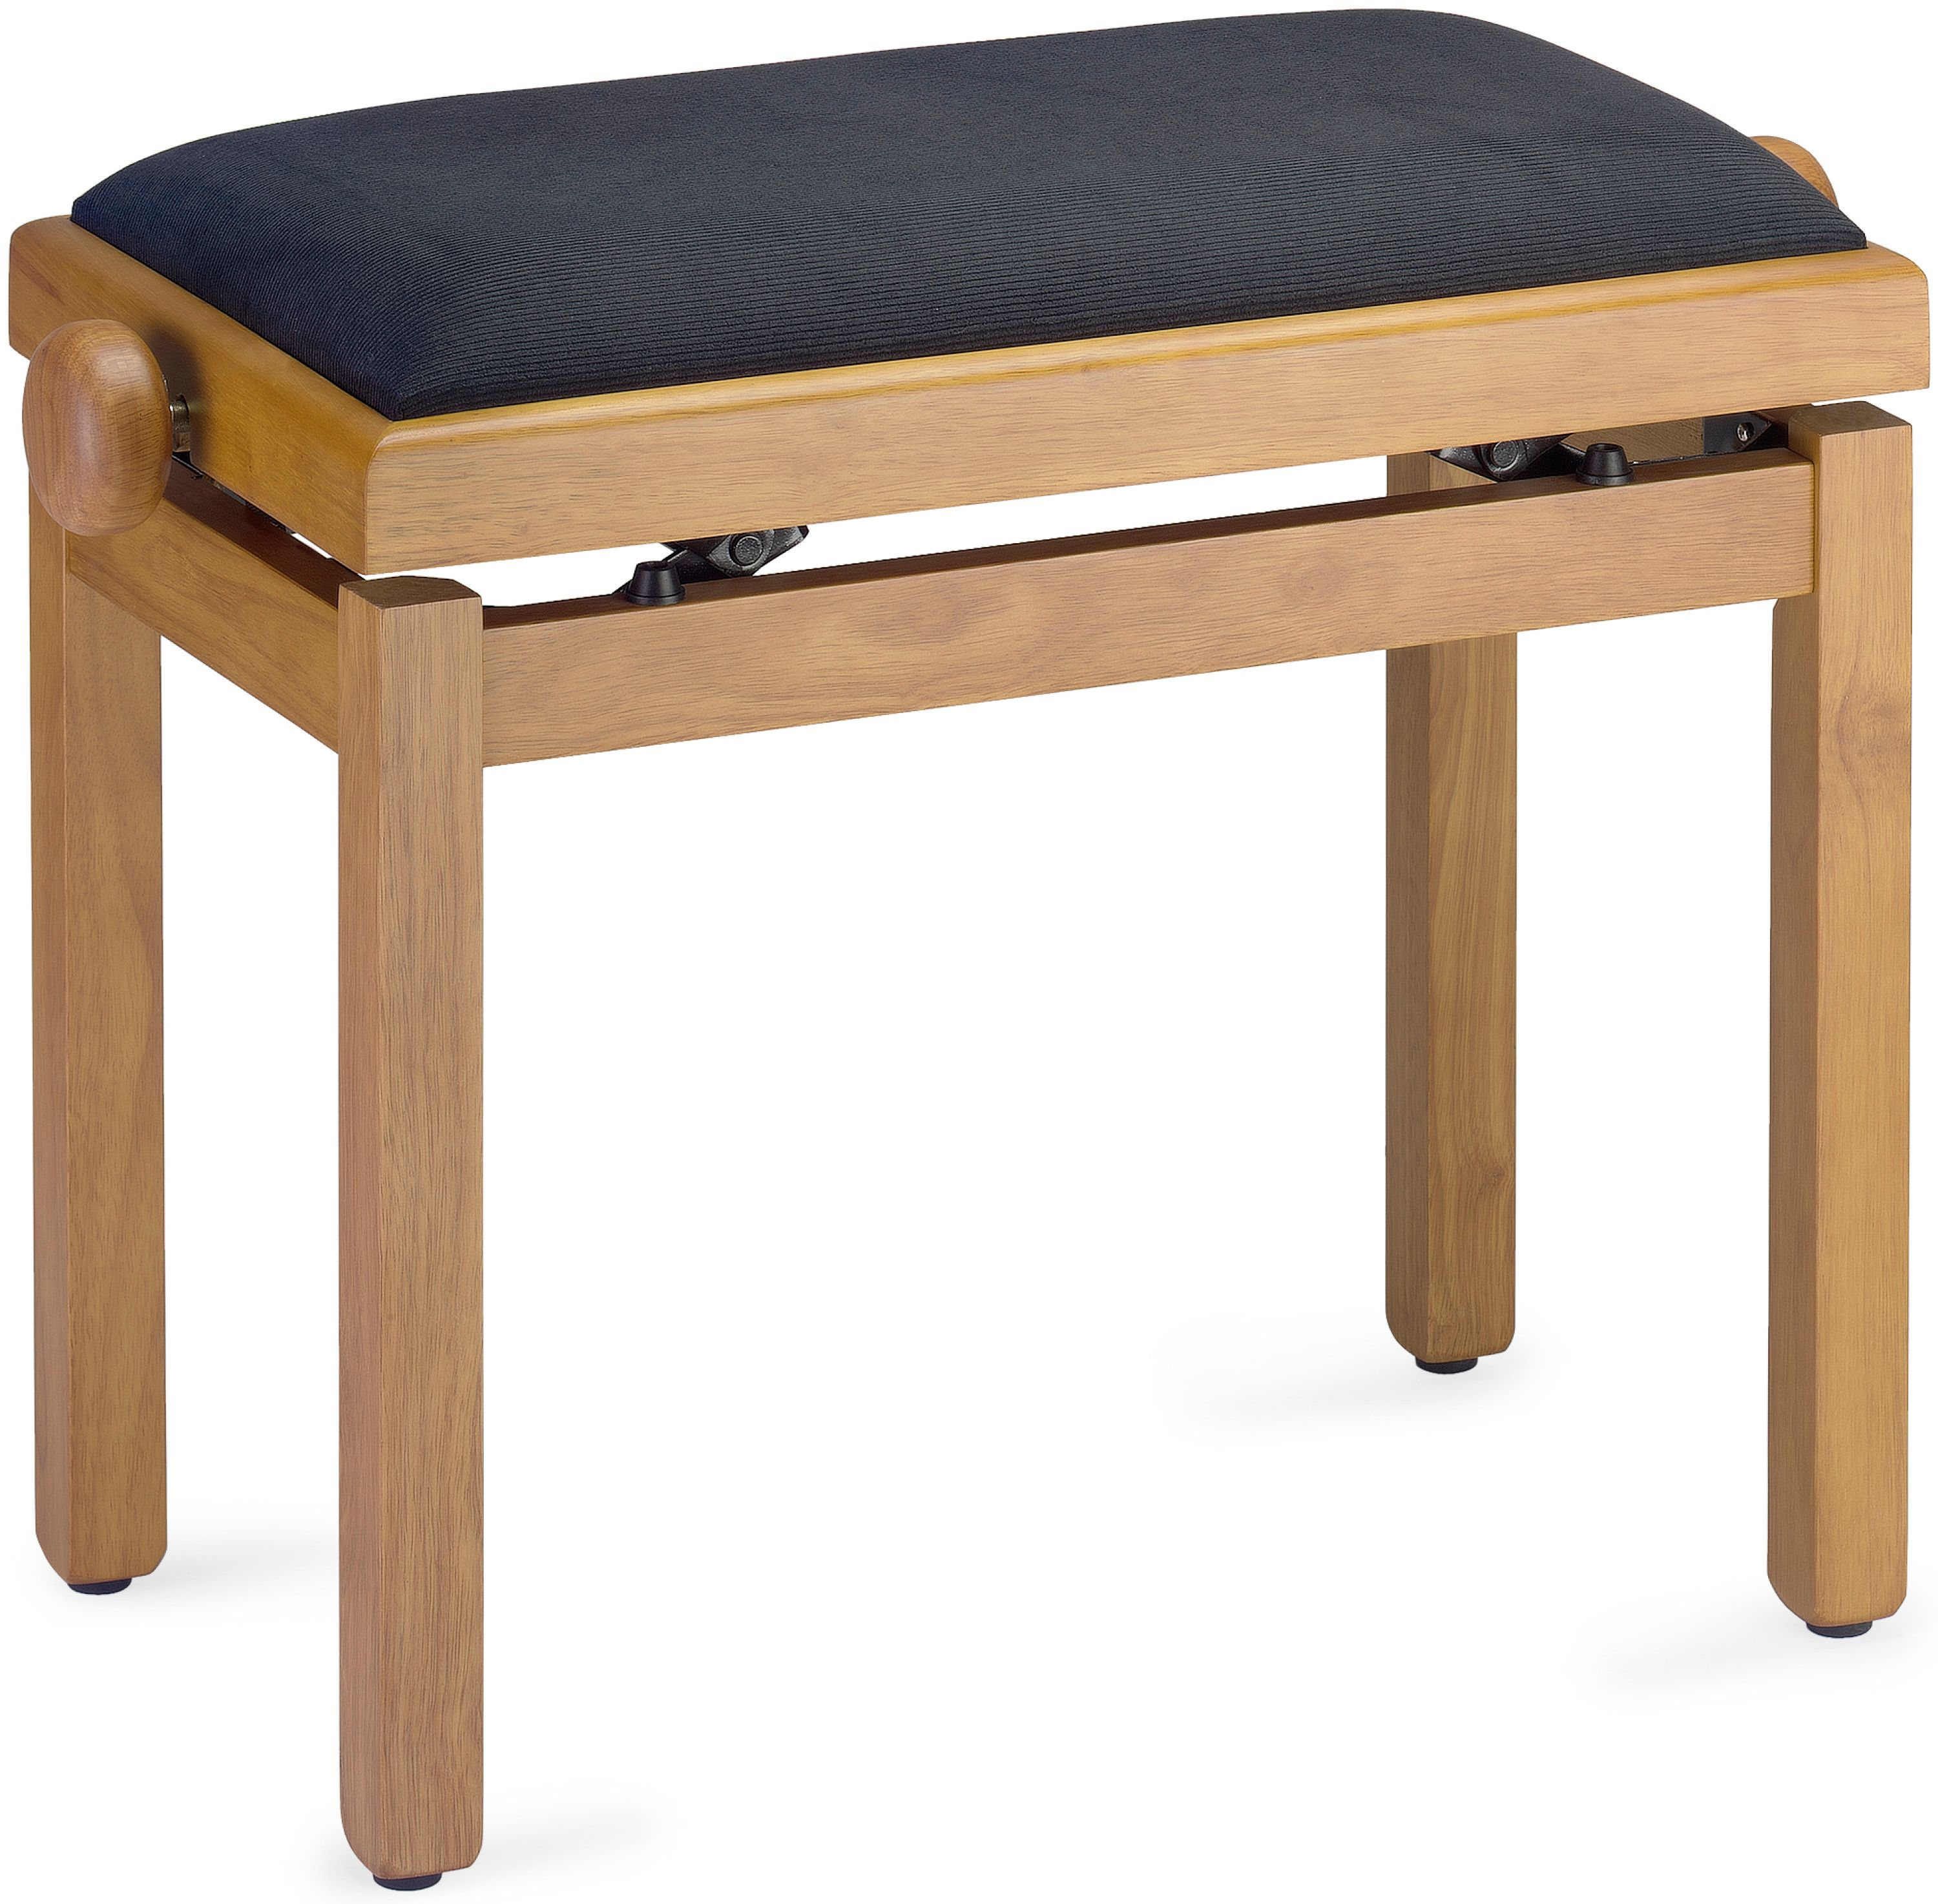 Black Velvet Stagg PB55 High-Gloss Adjustable Flip-Top Piano Bench with Sheet Music Storage